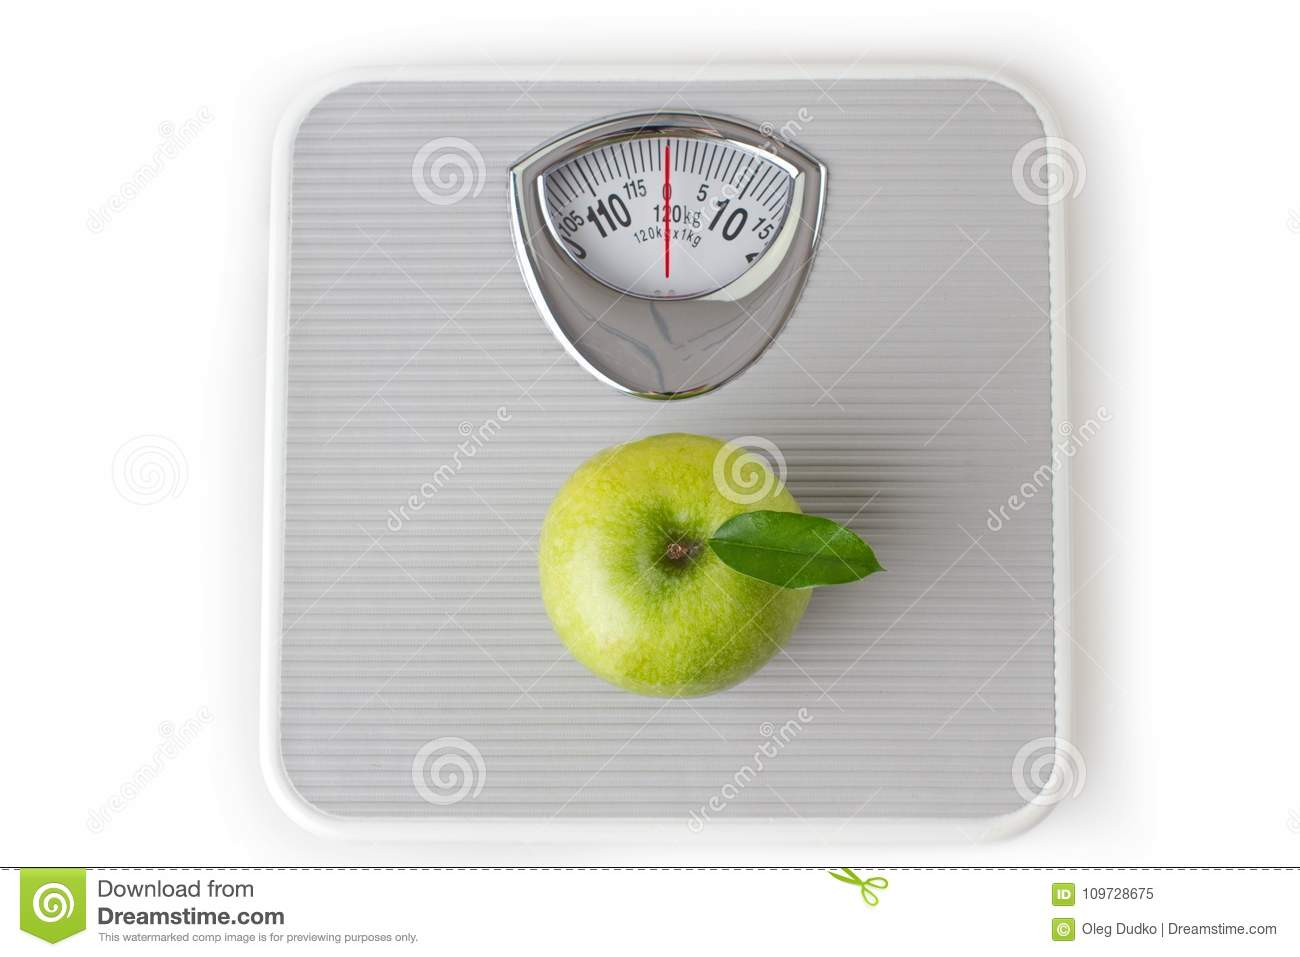 Green Apple On A Bathroom Scale Weight Loss Stock Image